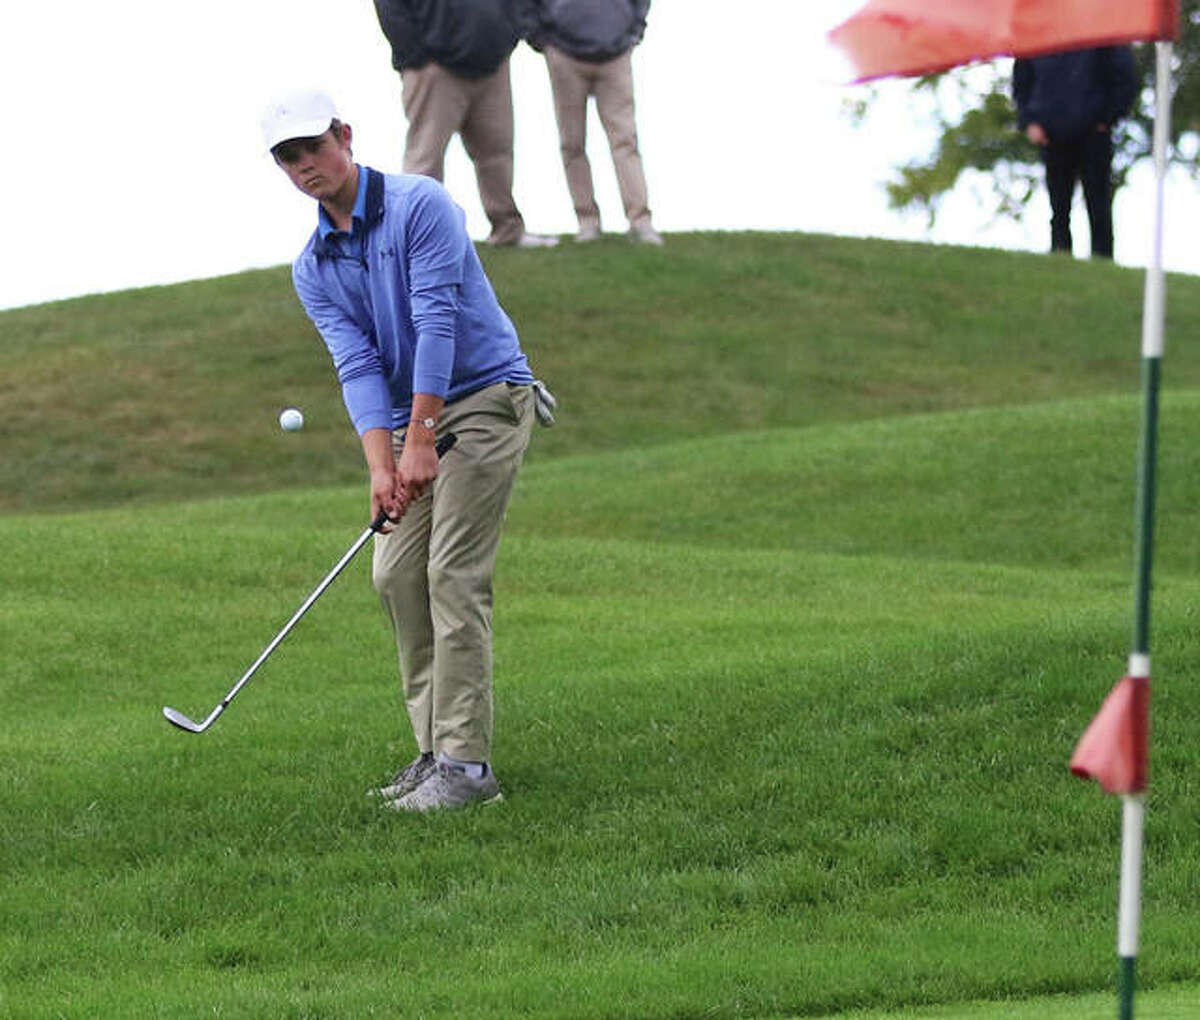 Carlinville's Henry Kufa chips onto a green during last season's SCC Tournament at Indian Springs golf course in Fillmore. the SCC was back at Indian Springs on Monday and Kufa repeated as an All-SCC golfer by placing fourth at 75.